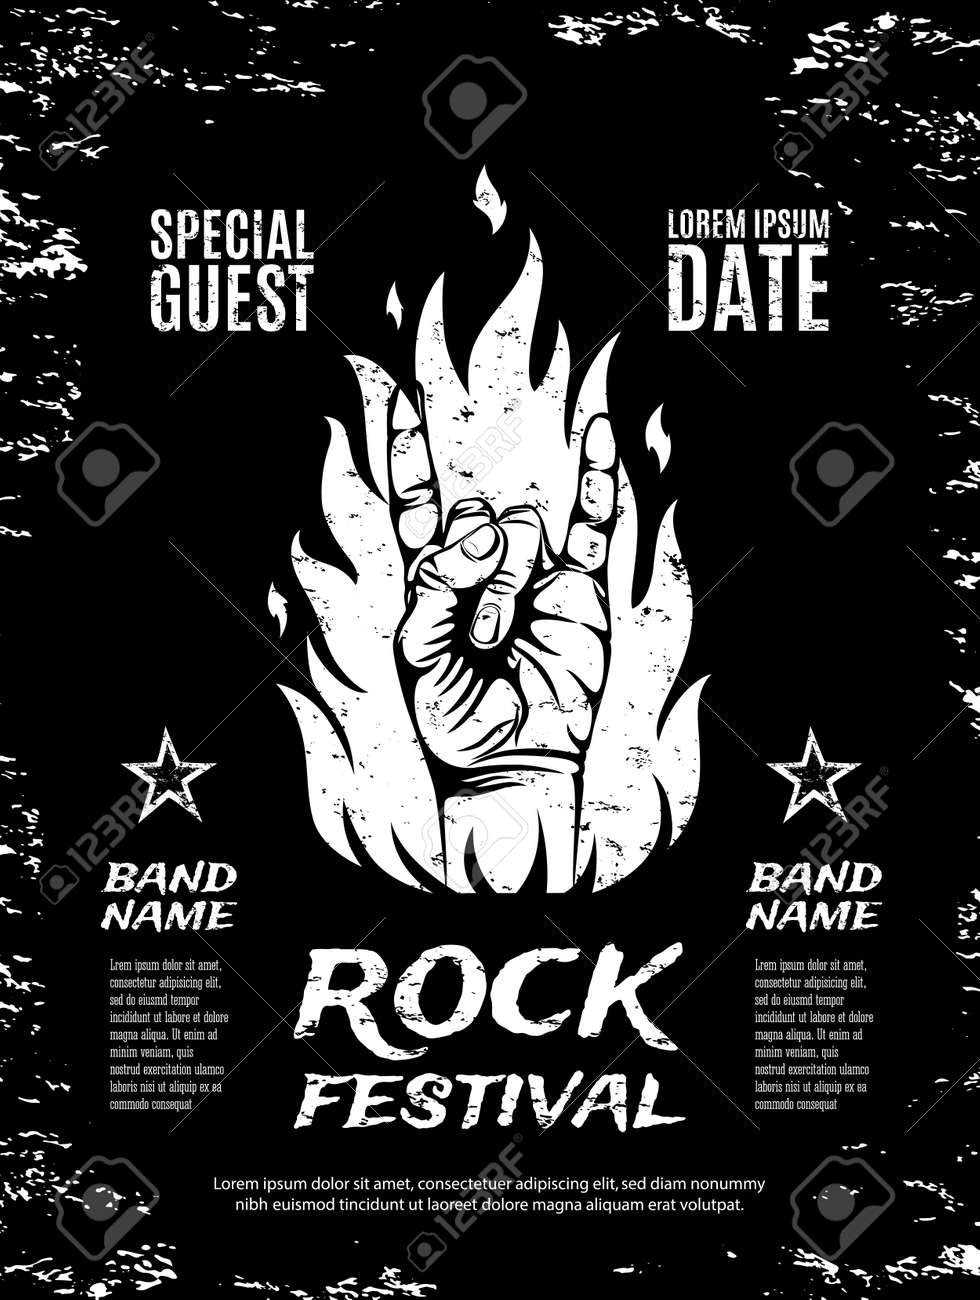 Rock n roll poster design - Grunge Rock Festival Poster With Rock N Roll Sign And Fire Vector Illustration